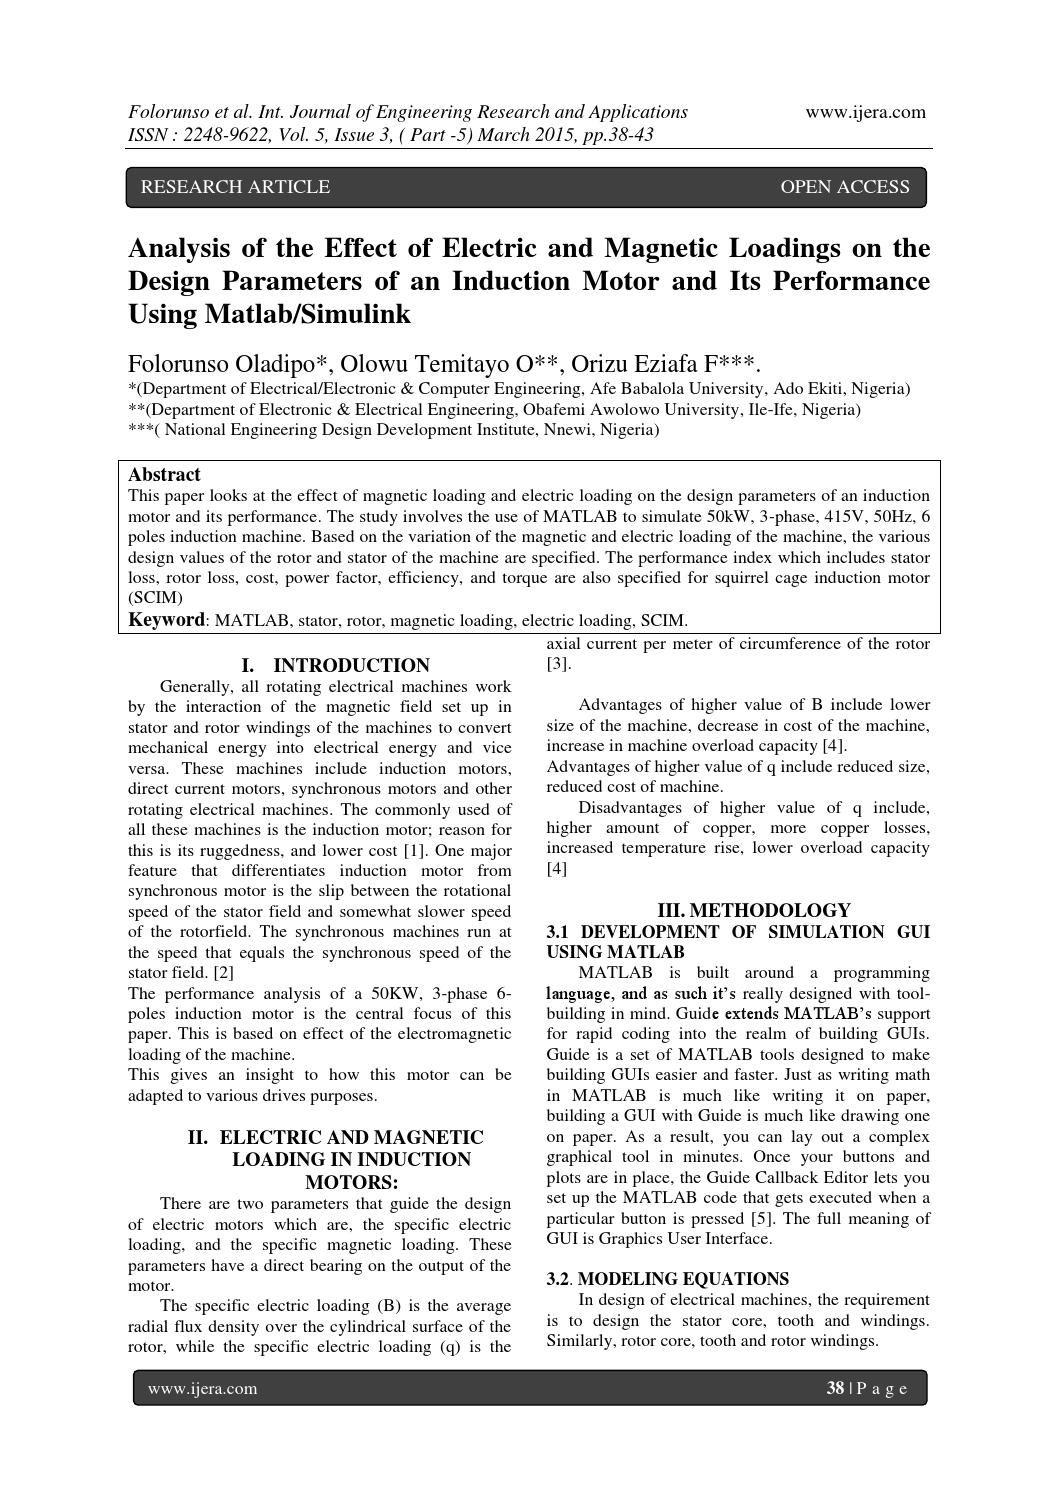 Analysis of the Effect of Electric and Magnetic Loadings on